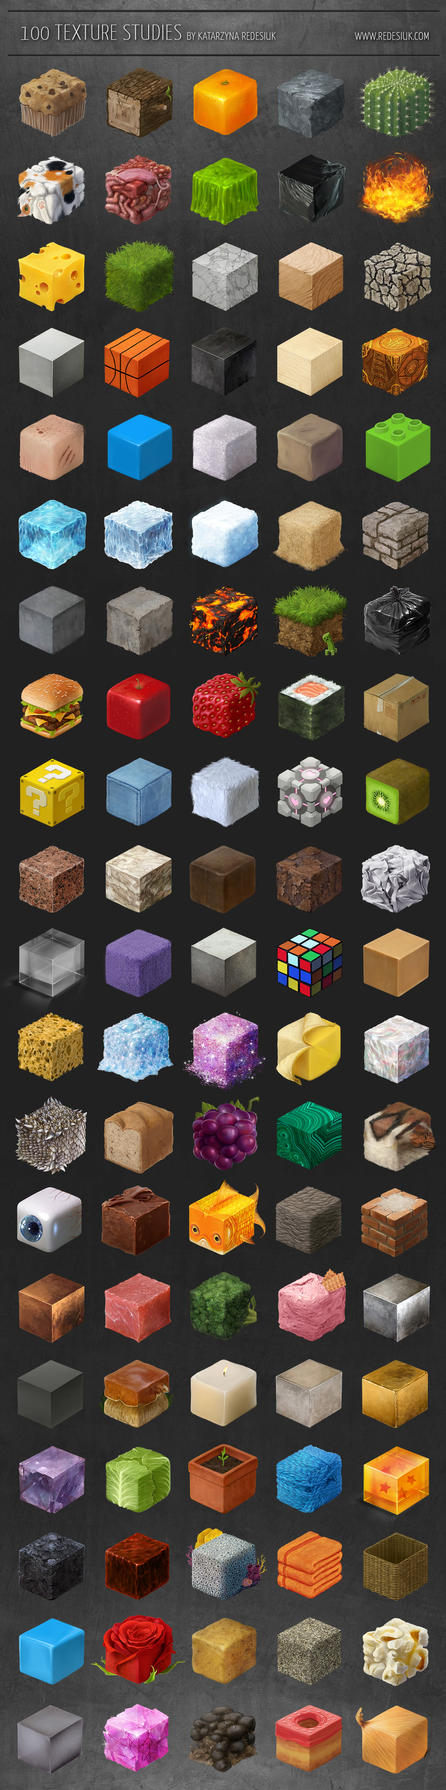 100 texture studies by vesner